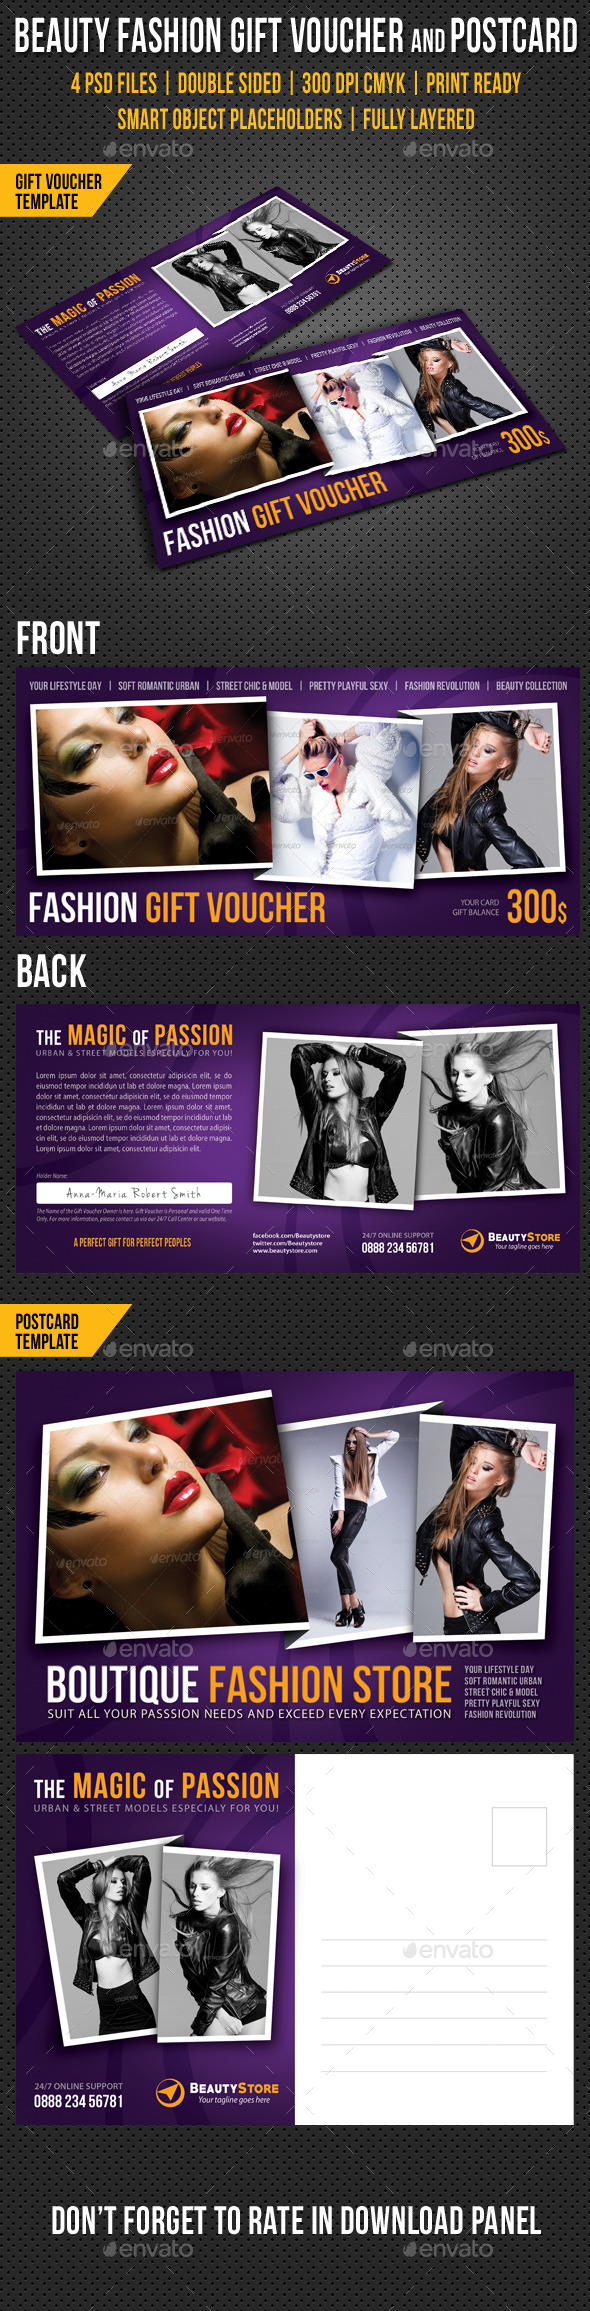 Beauty Fashion Gift Voucher and Postcard V04 - Cards & Invites Print Templates